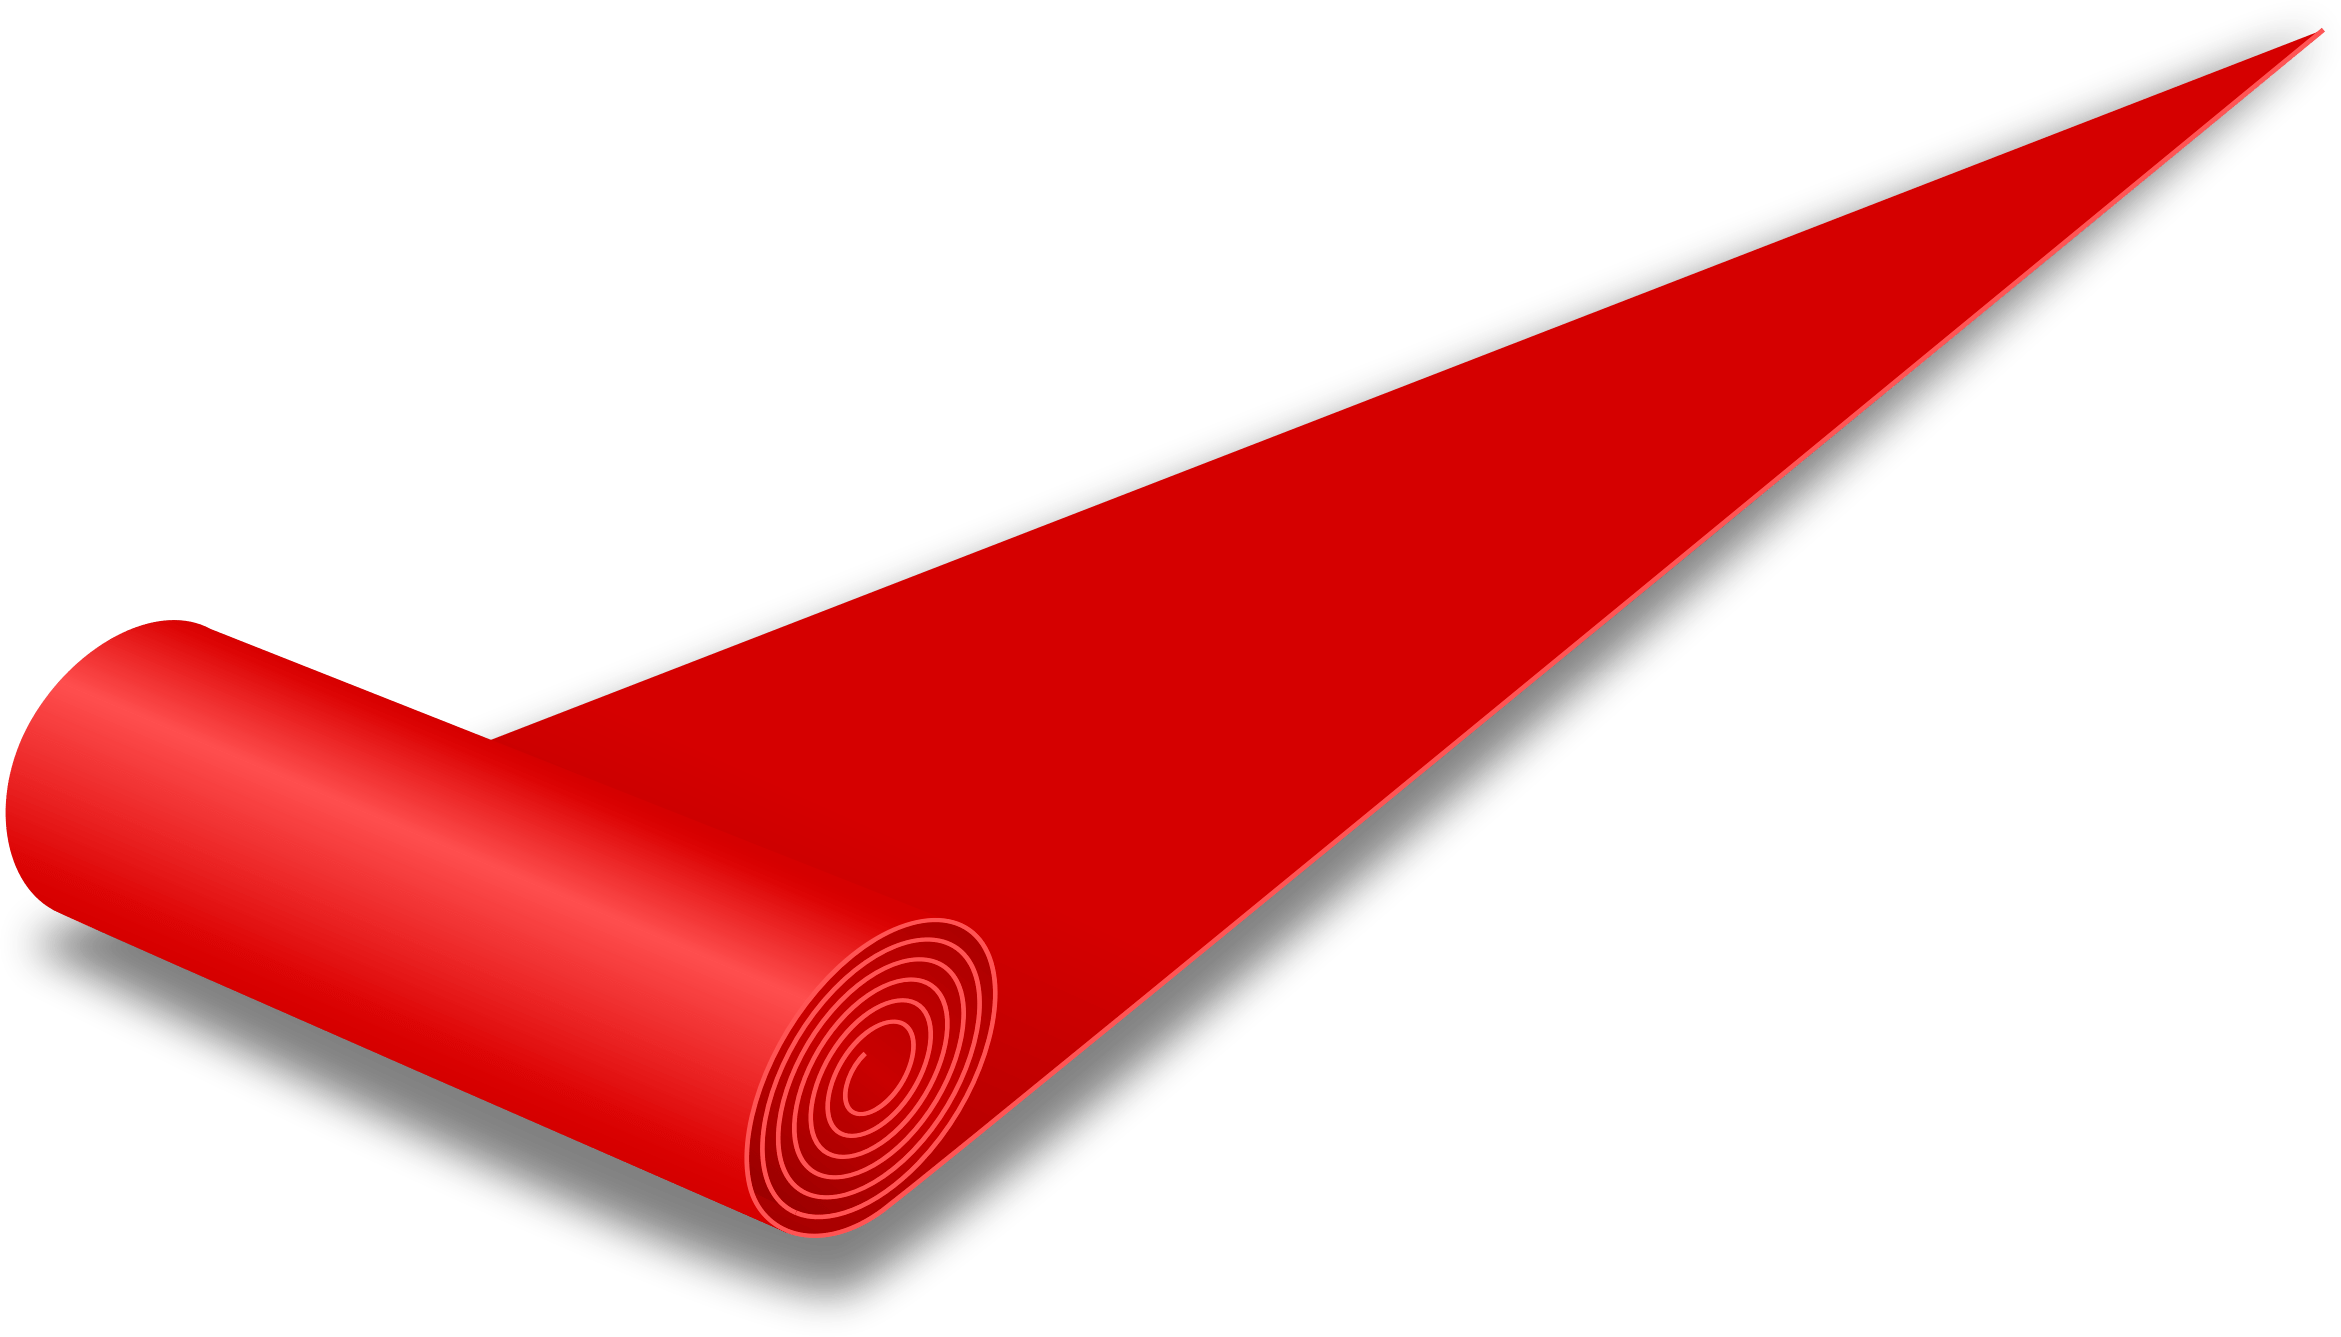 Roter Teppich Vektor Clipart Red Carpet